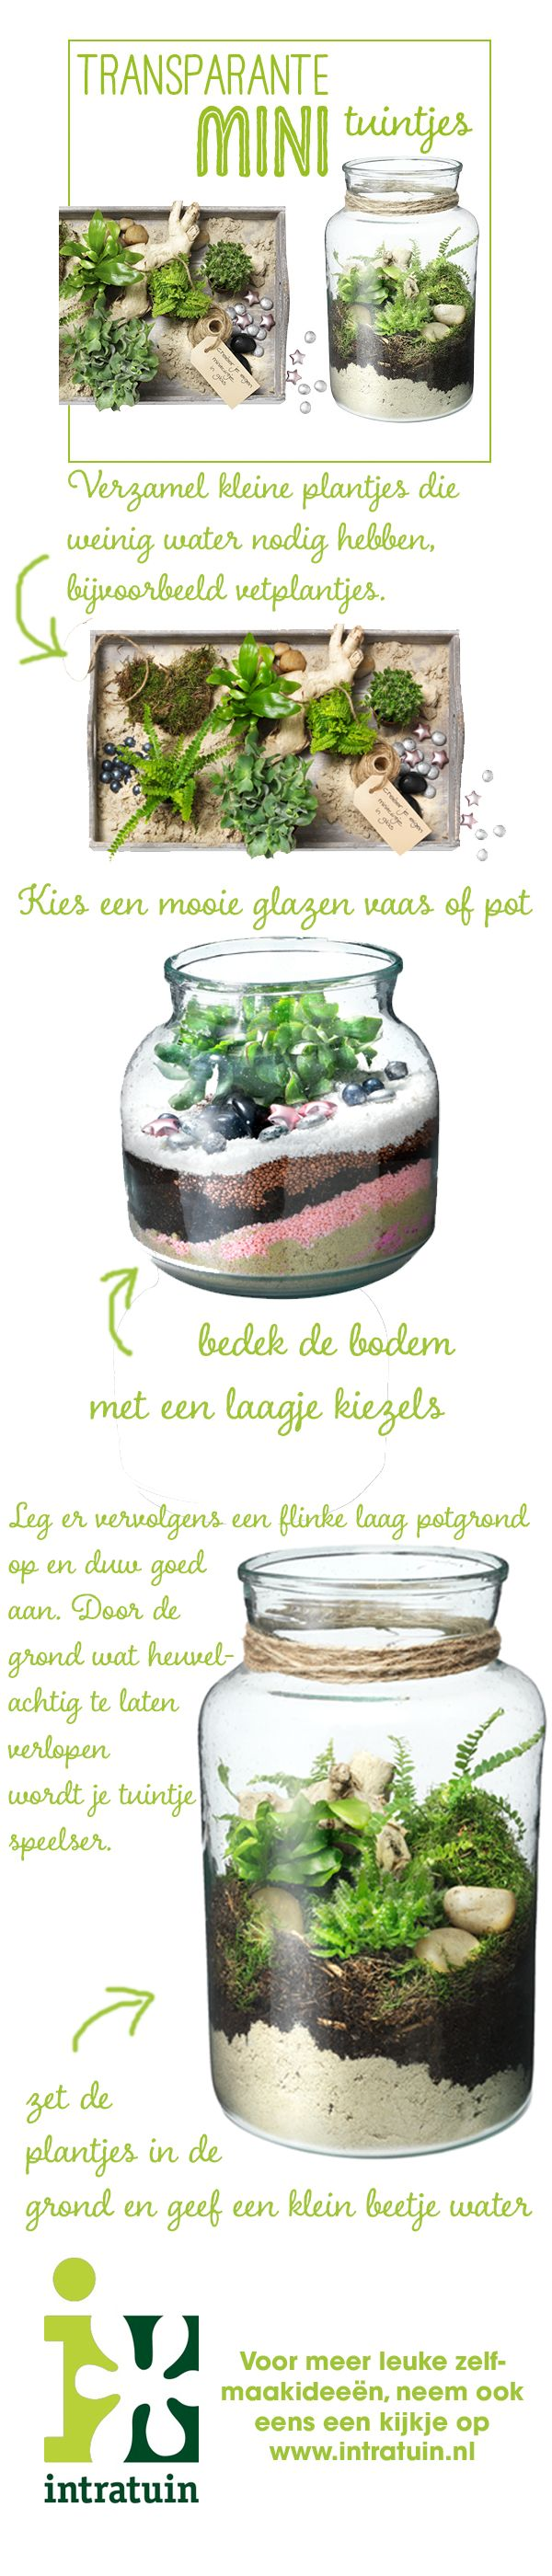 DIY minigarden